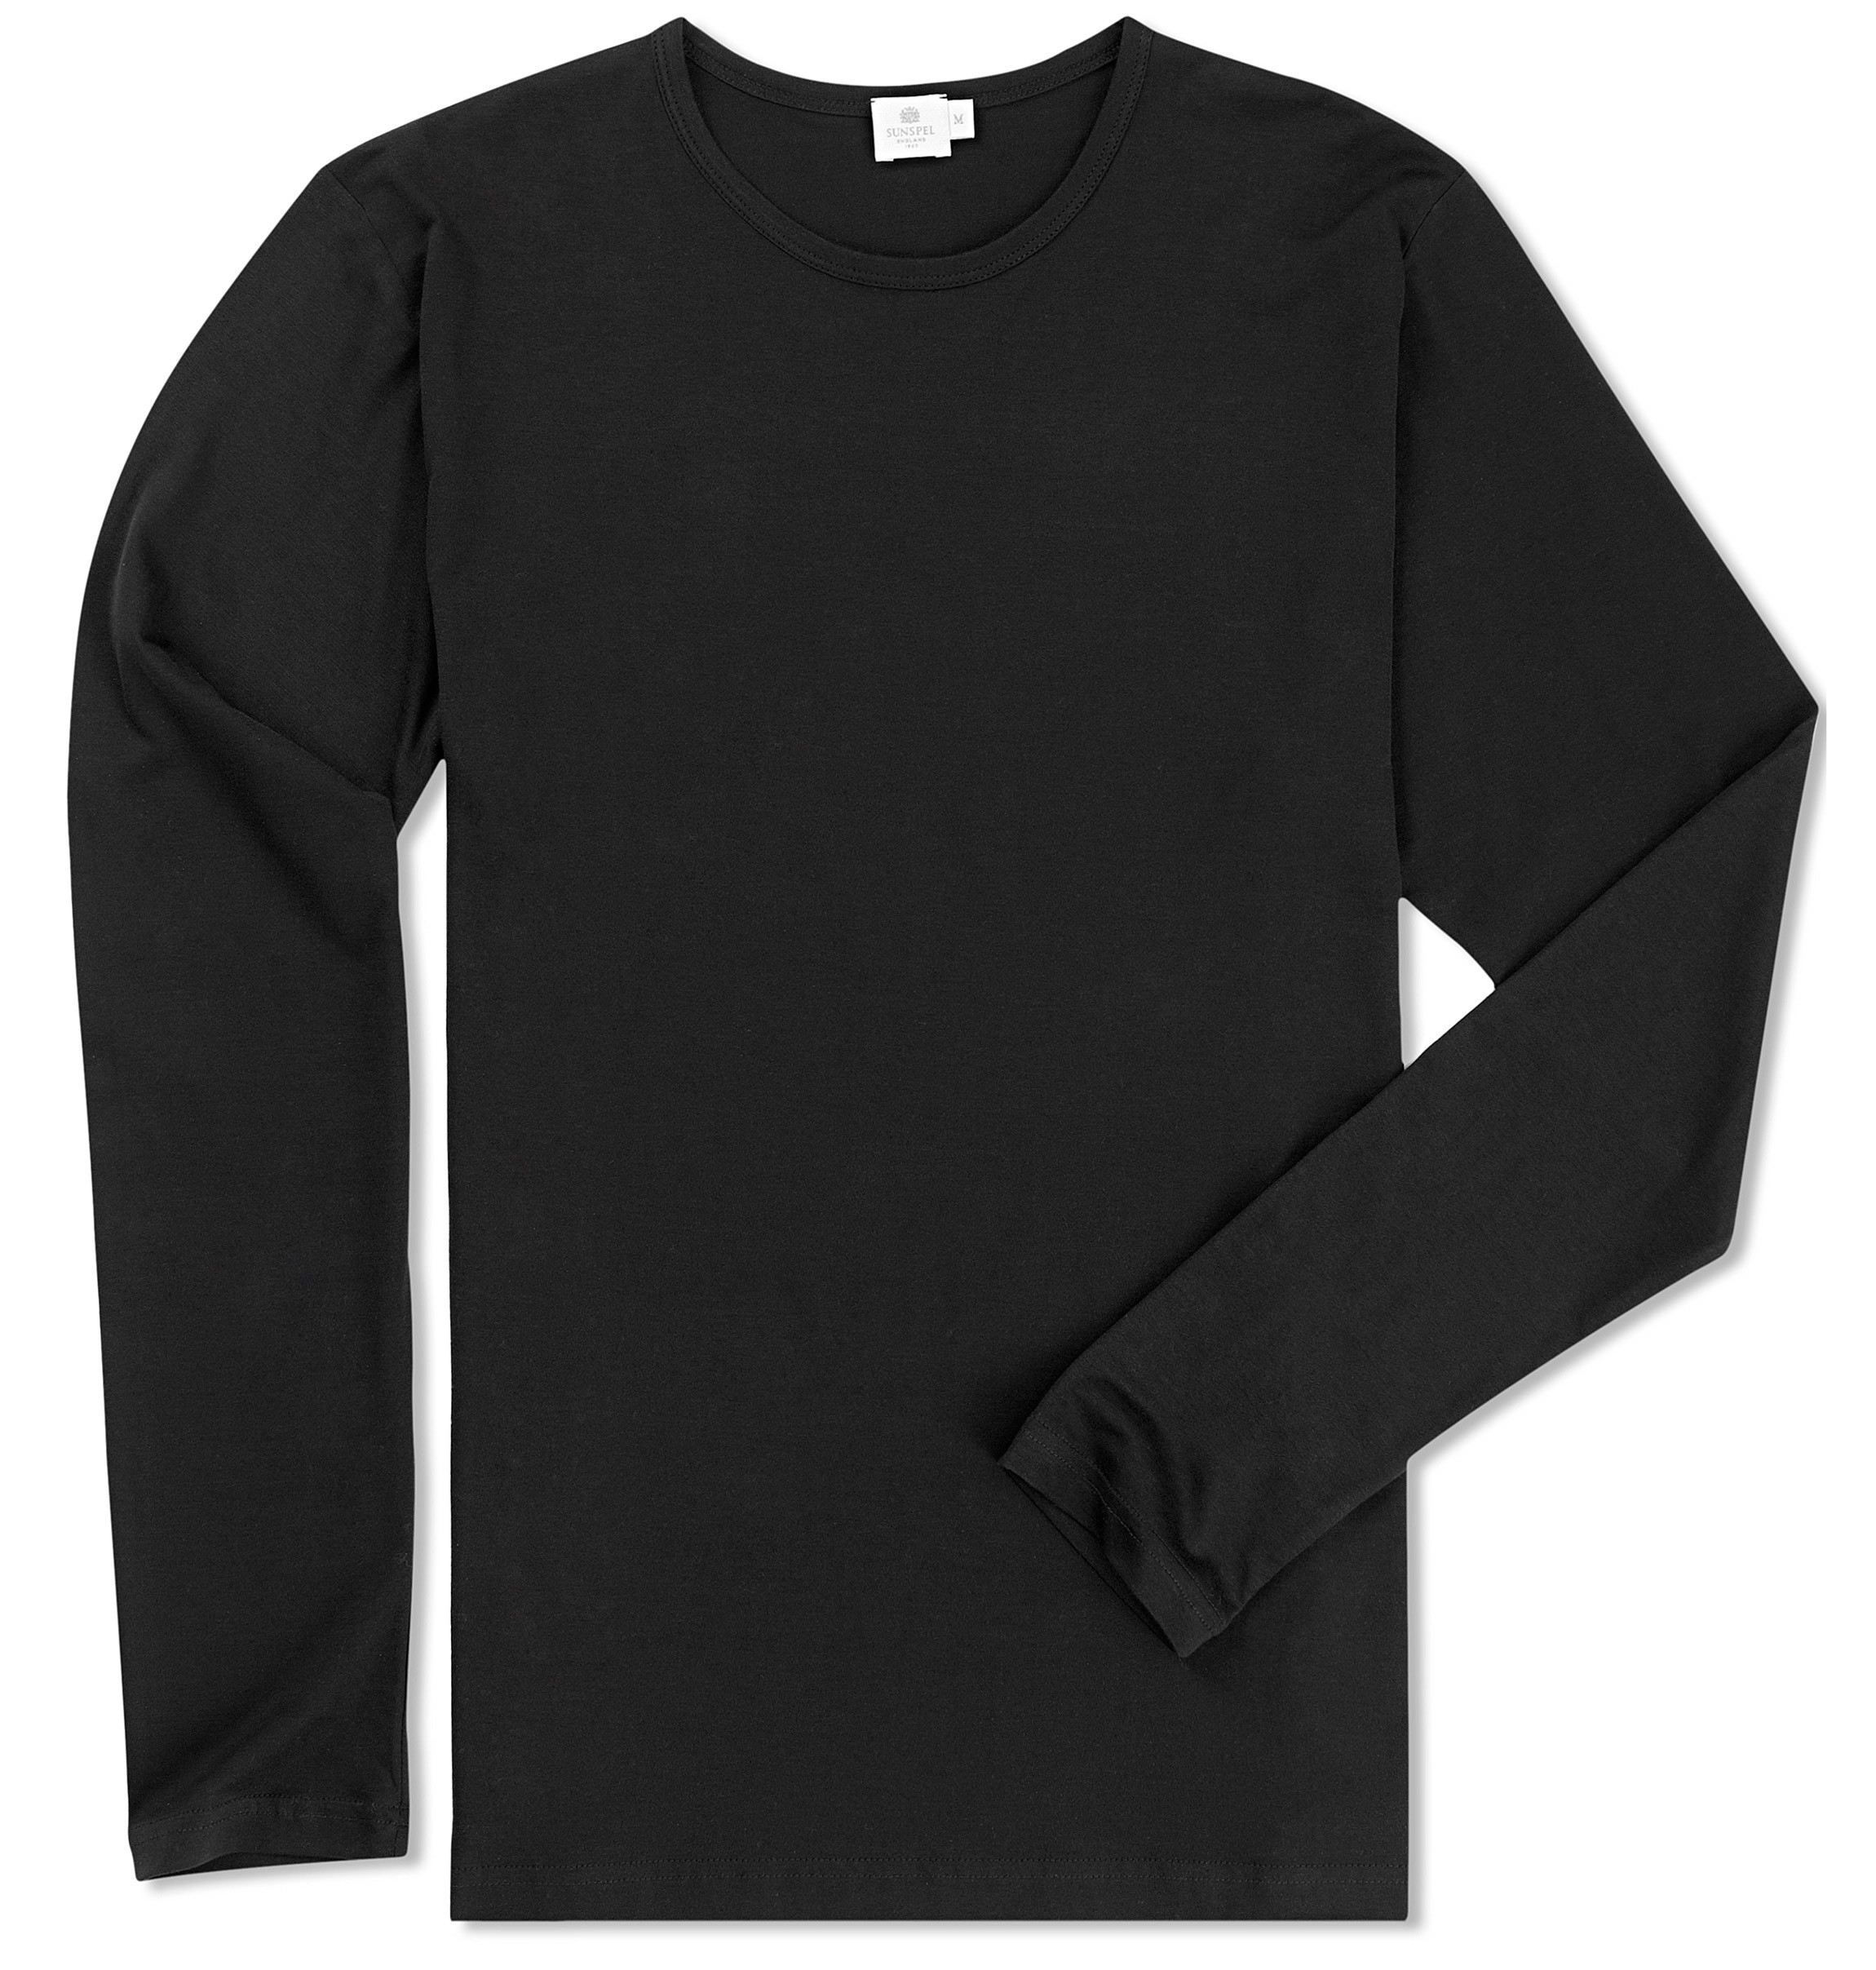 Napapijri sambuci box logo long sleeve crew neck t-shirt in black. £ Fred Perry Sports Authentic long sleeve taped ringer t-shirt in black. £ Calvin Klein Modern Cotton Long Sleeve Top. £ Polo Ralph Lauren long sleeve soft cotton top in navy. £